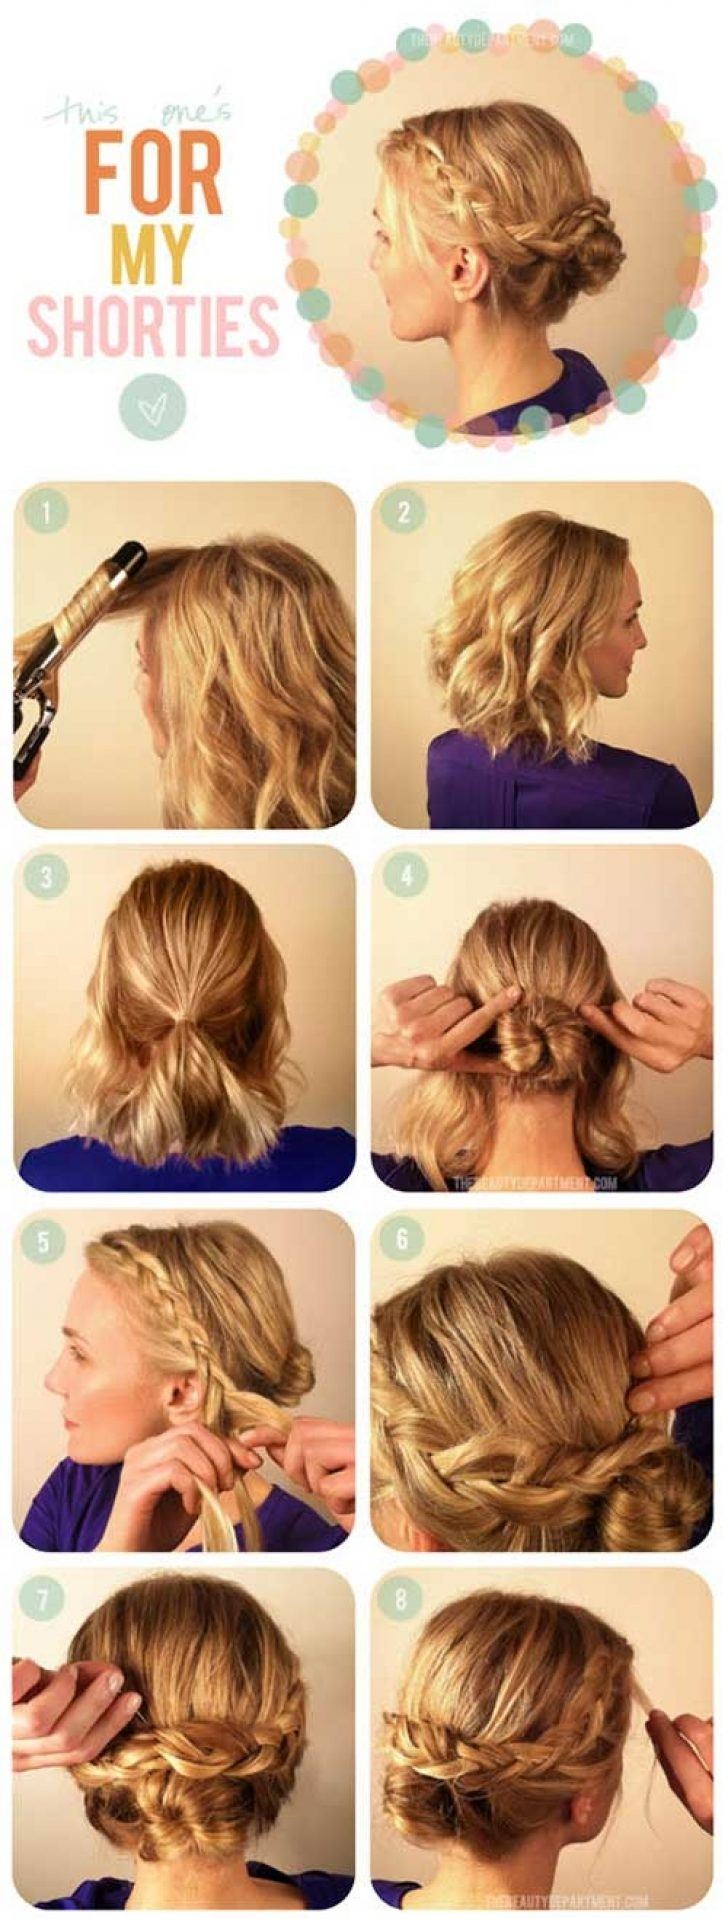 Permalink to Beautiful Hairstyles For Short Hair Easy To Do